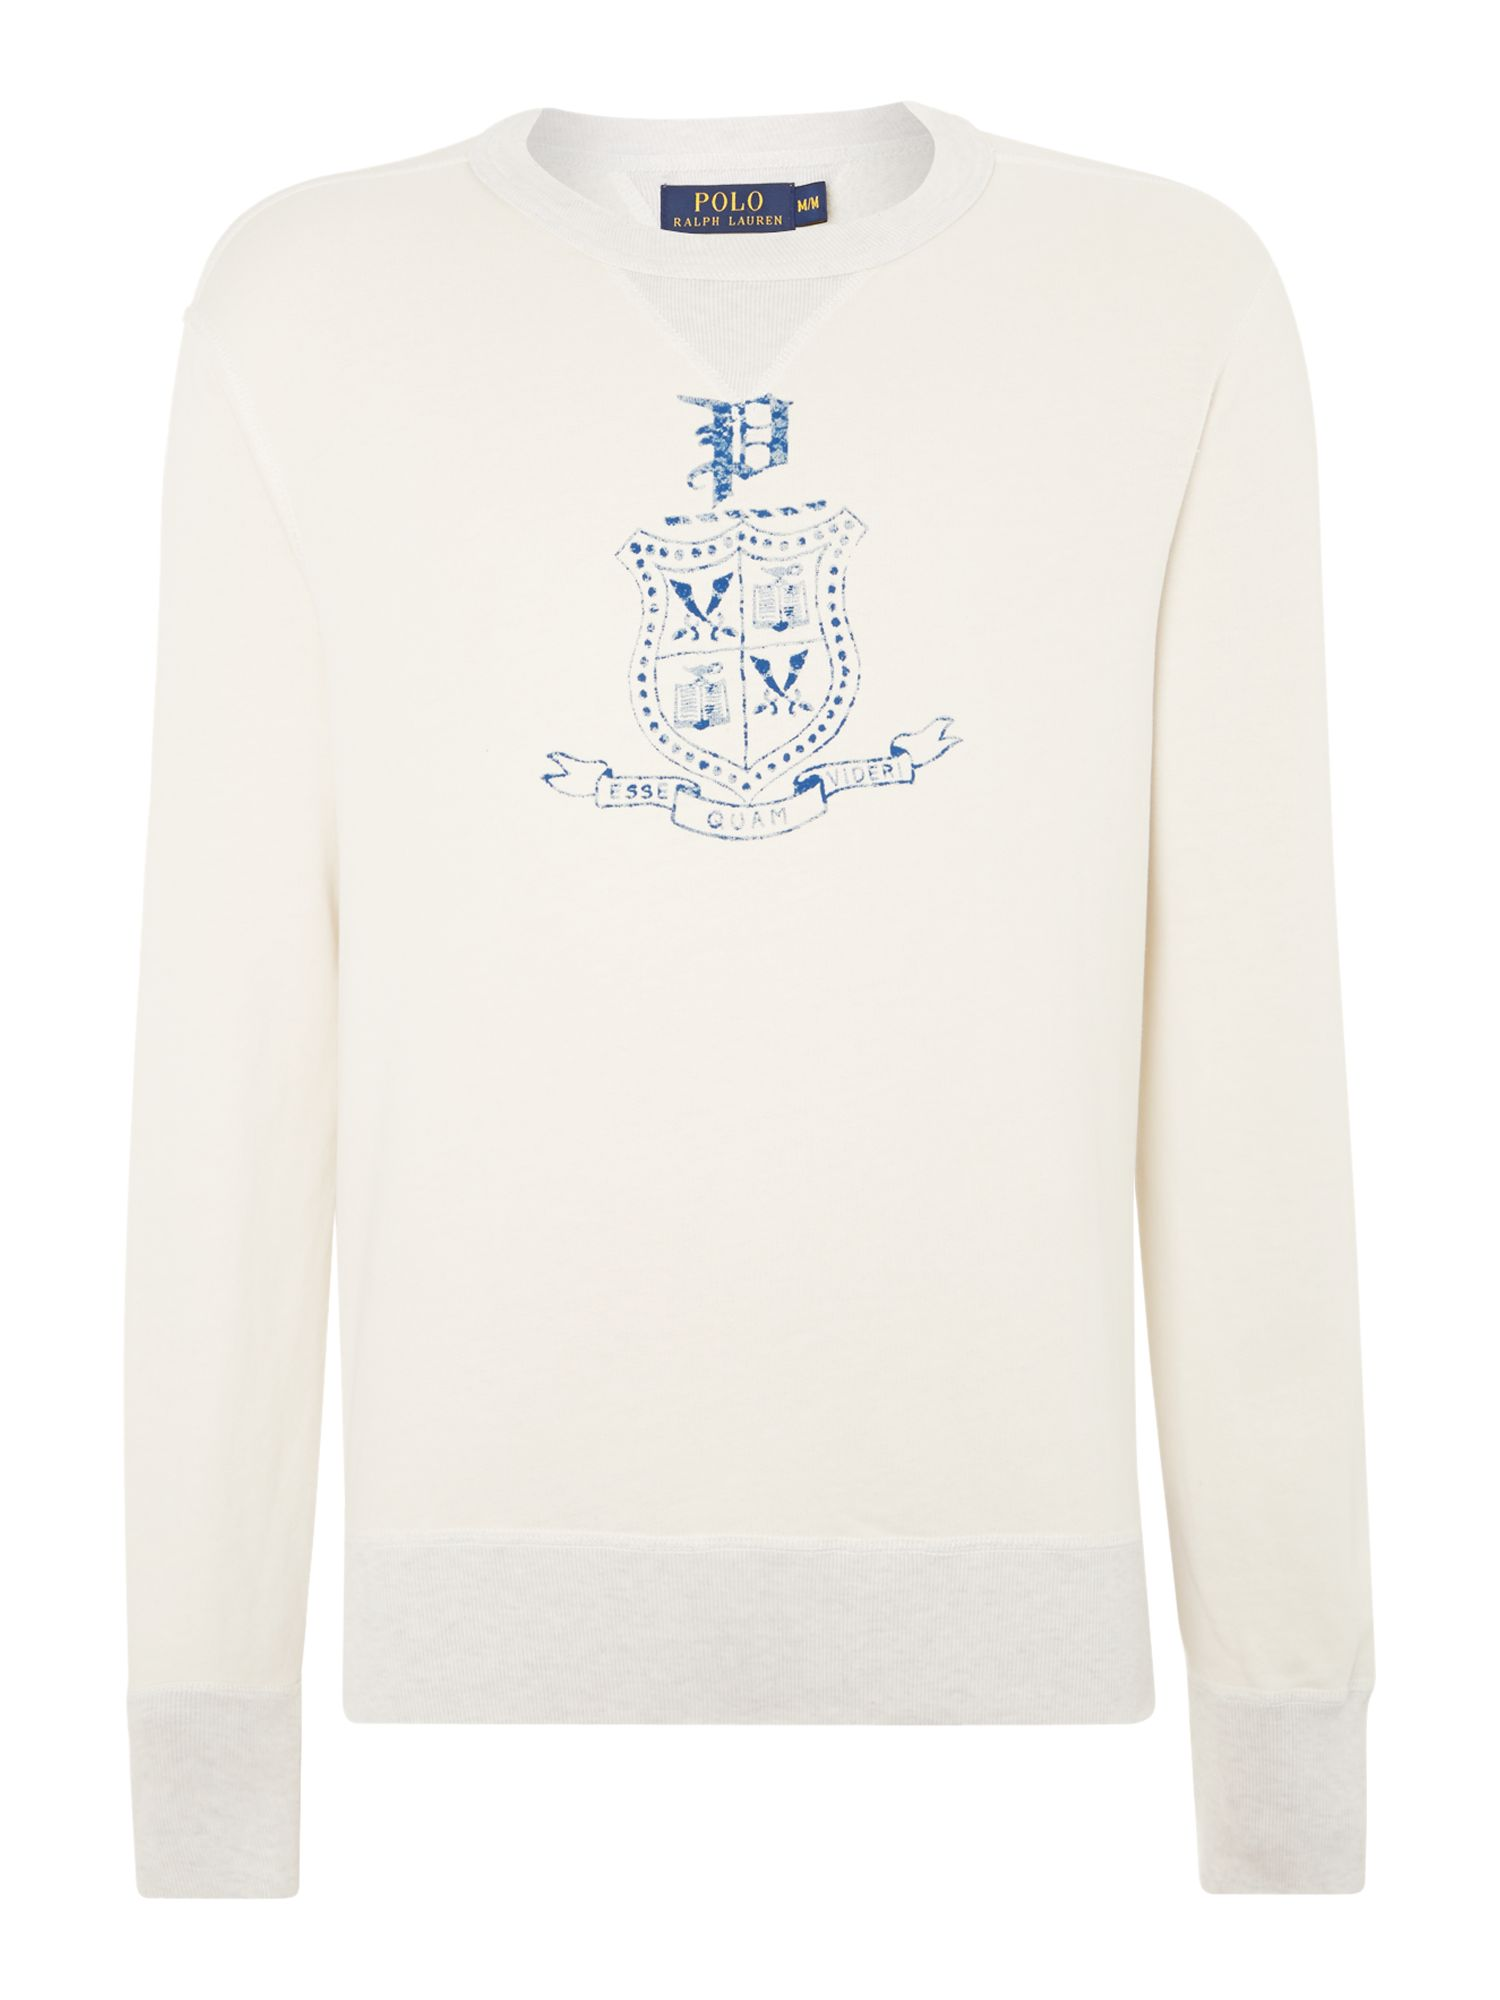 Crew neck Polo logo sweatshirt